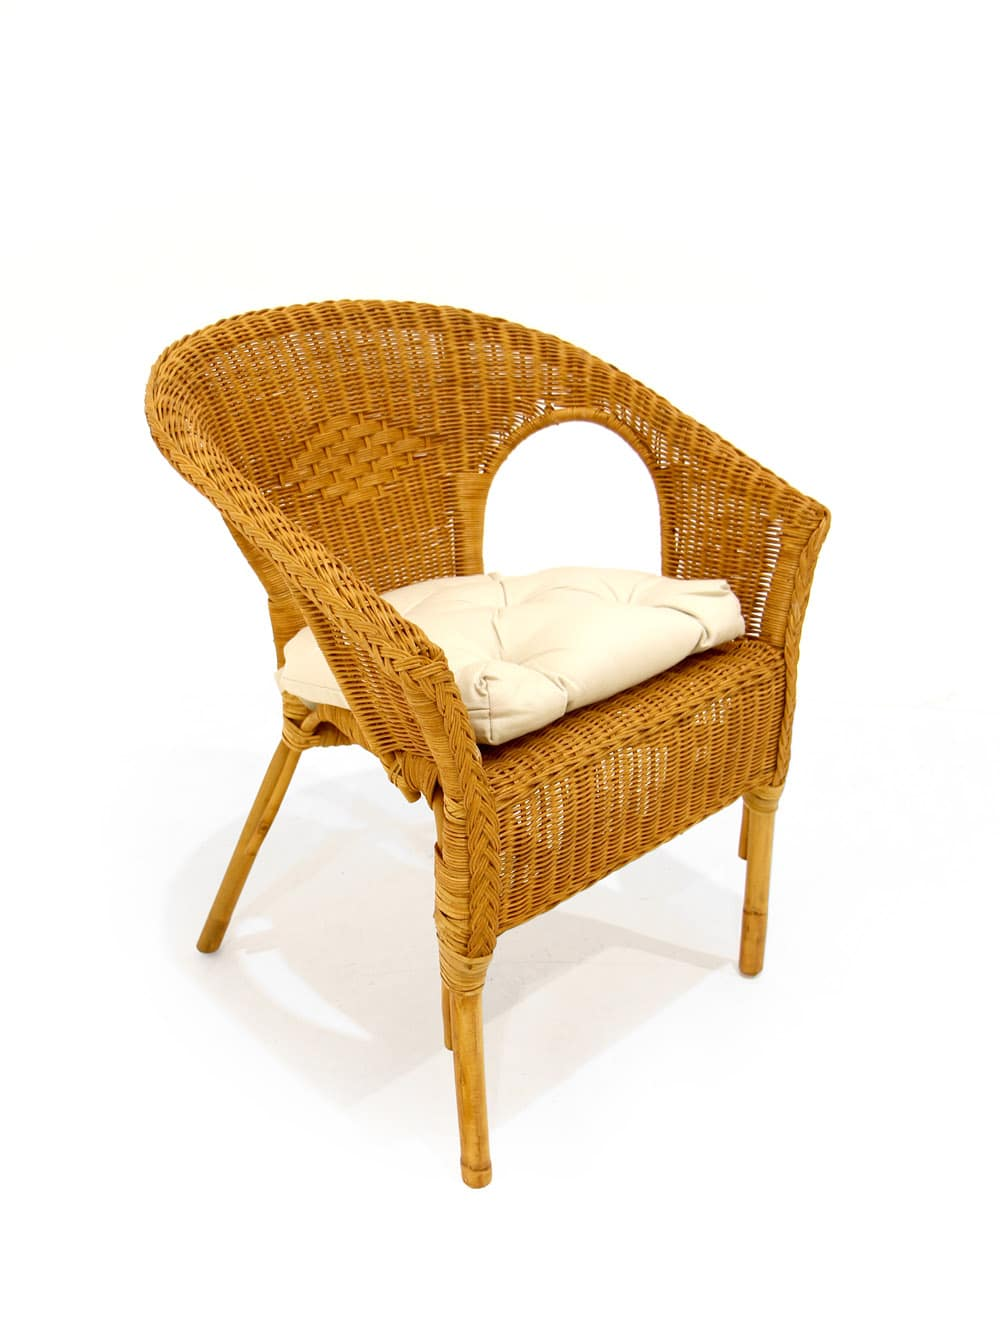 Natural Wicker Chair   Event Prop Hire